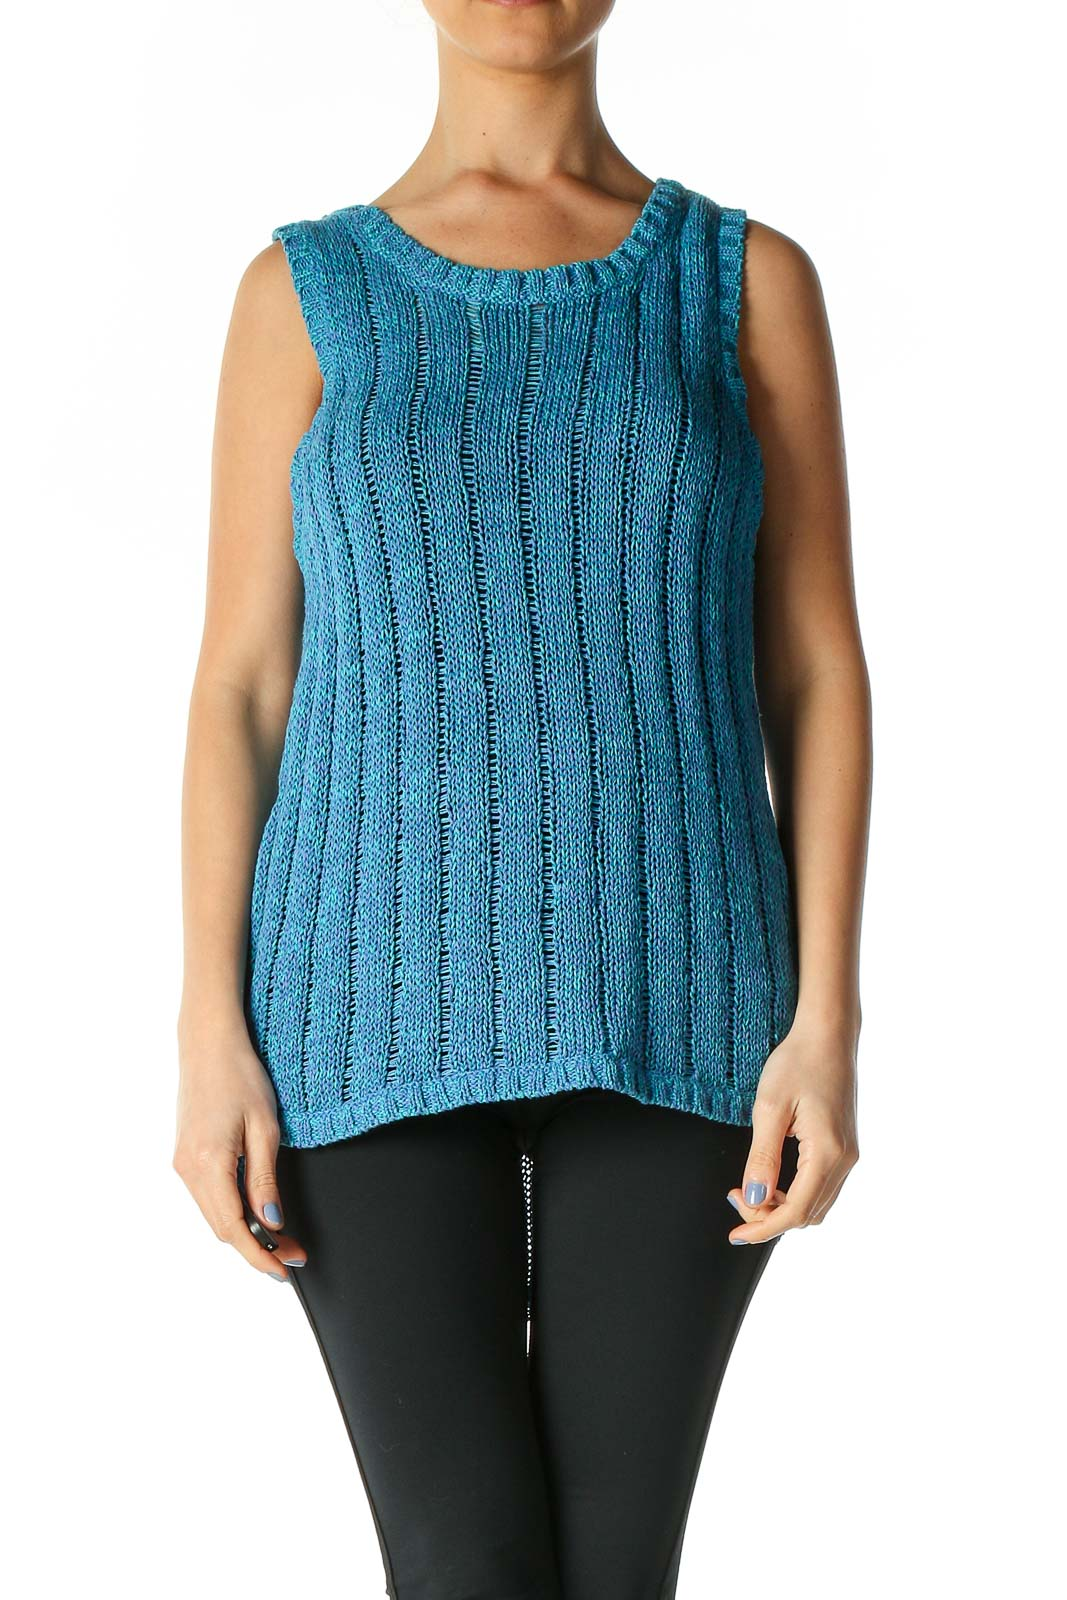 Blue Textured Casual Tank Top Front